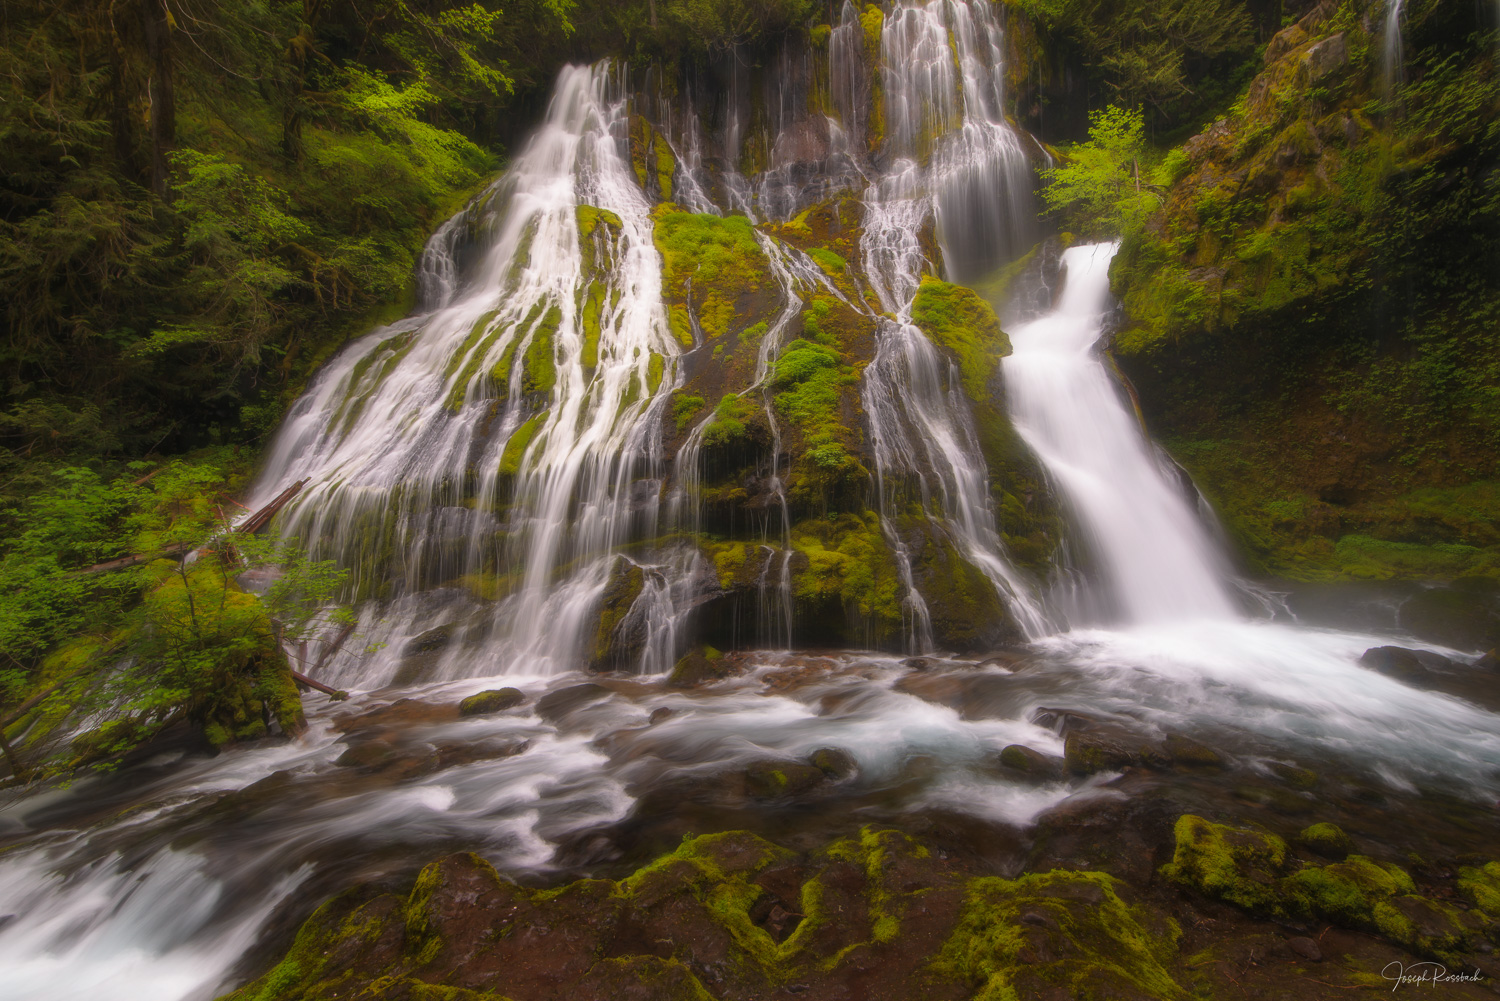 Spring waters flowing down Panther Creek Falls  a 130-foot (40 m) waterfall on Panther Creek in the Wind River Valley in Skamania...